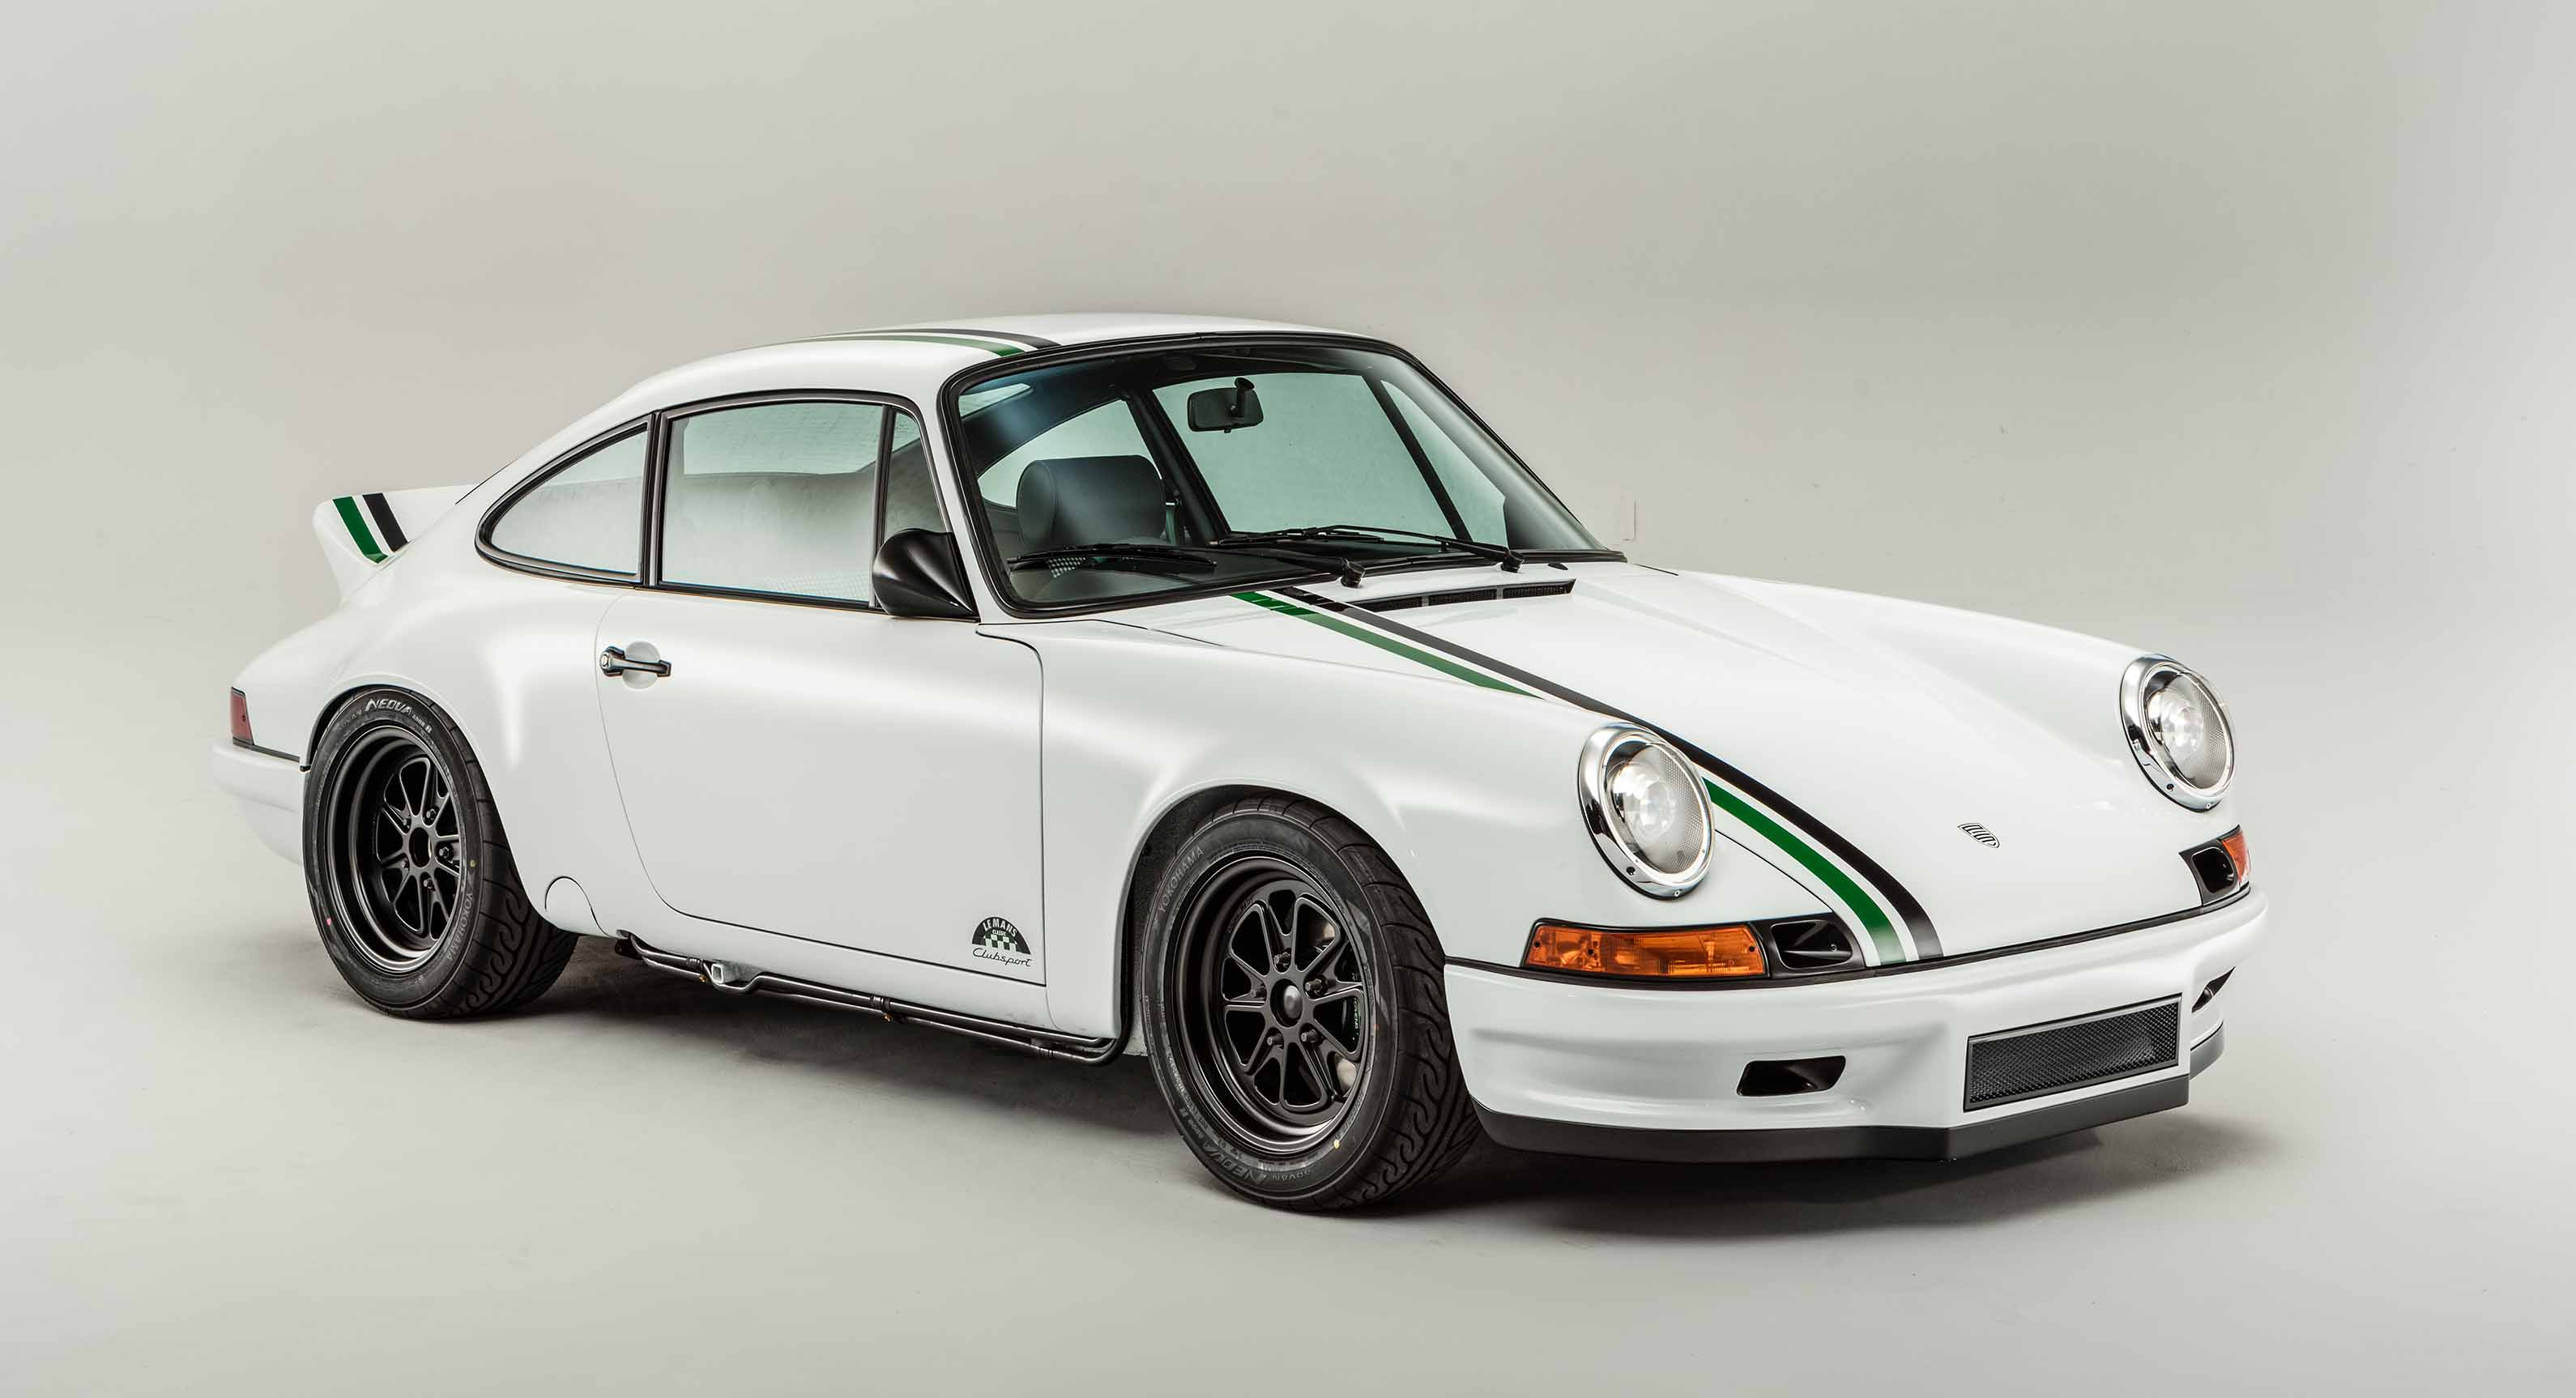 Why Every Porsche Enthusiast Wants This Paul Stephens AutoArt Le Mans Classic Clubsport